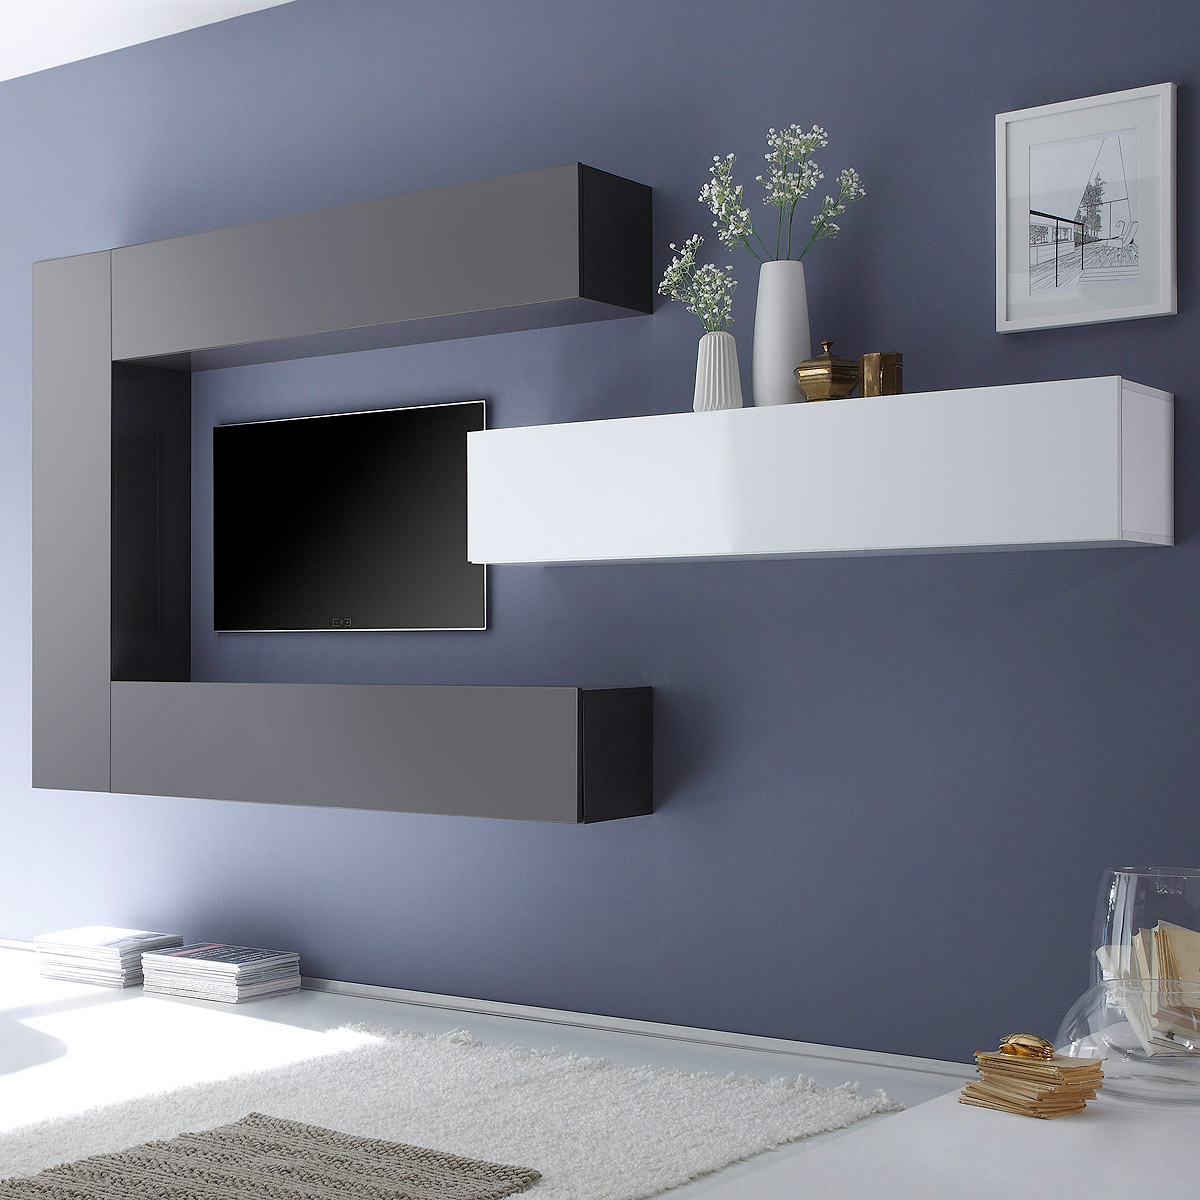 Wohnwand Anbauwand Weiss Lackiert Mit Sideboard Pictures to pin on ...